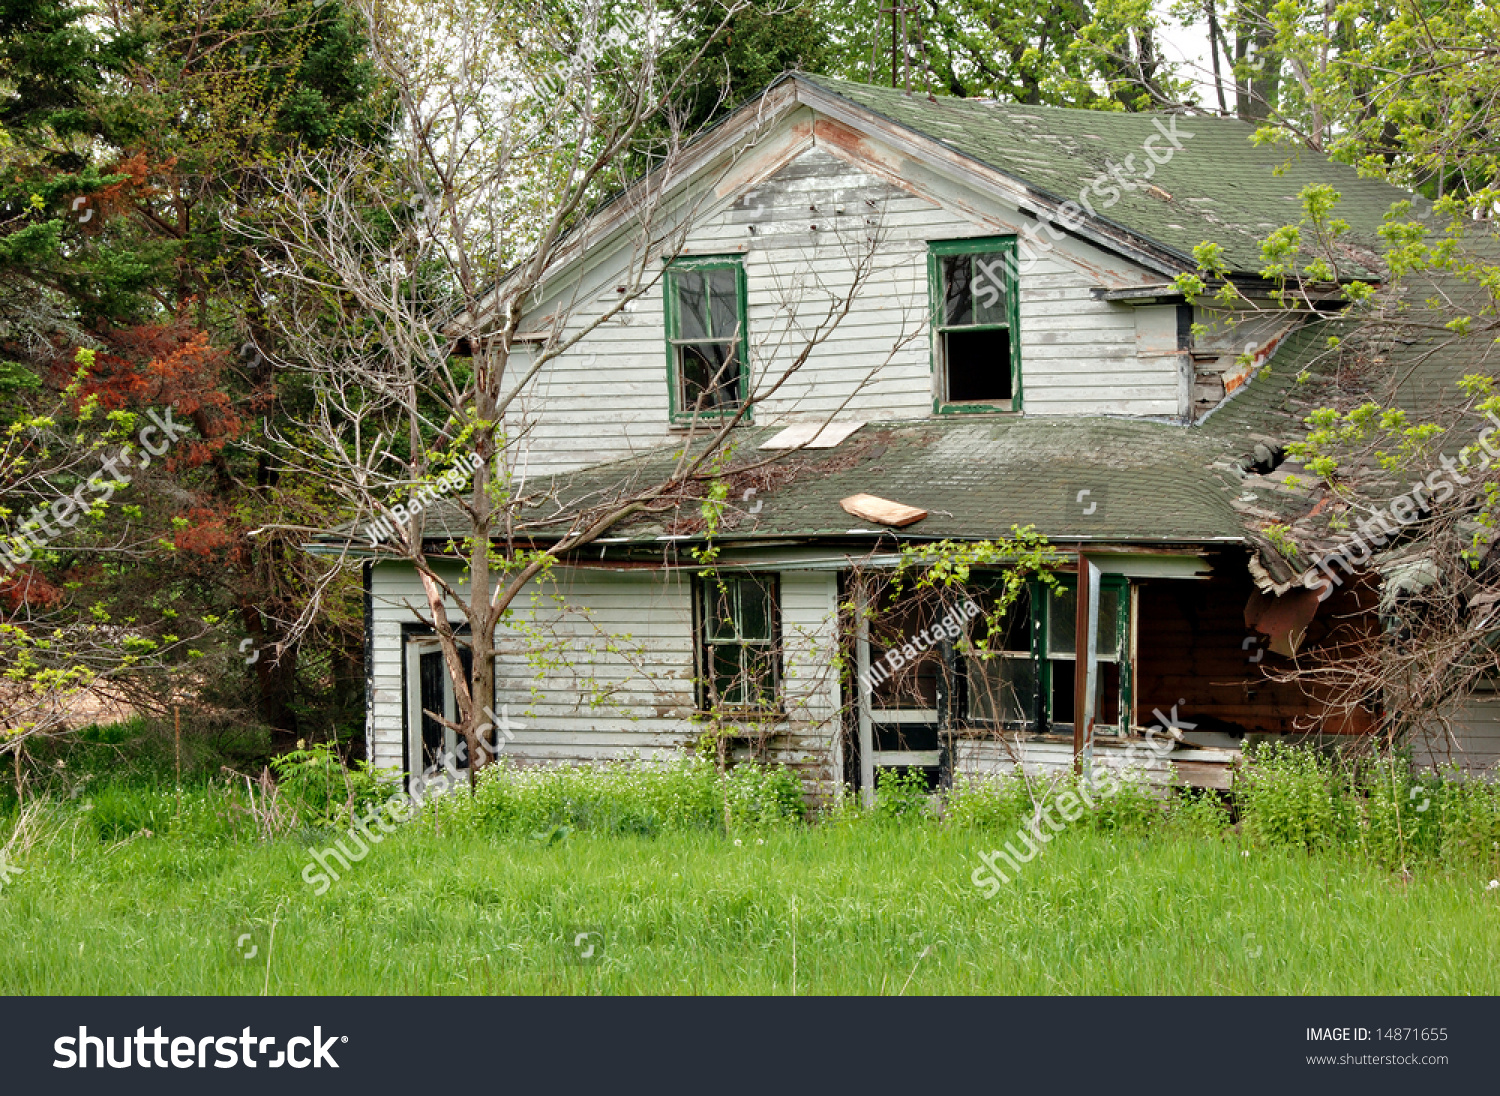 Abandoned House Falling Apart From Neglect.